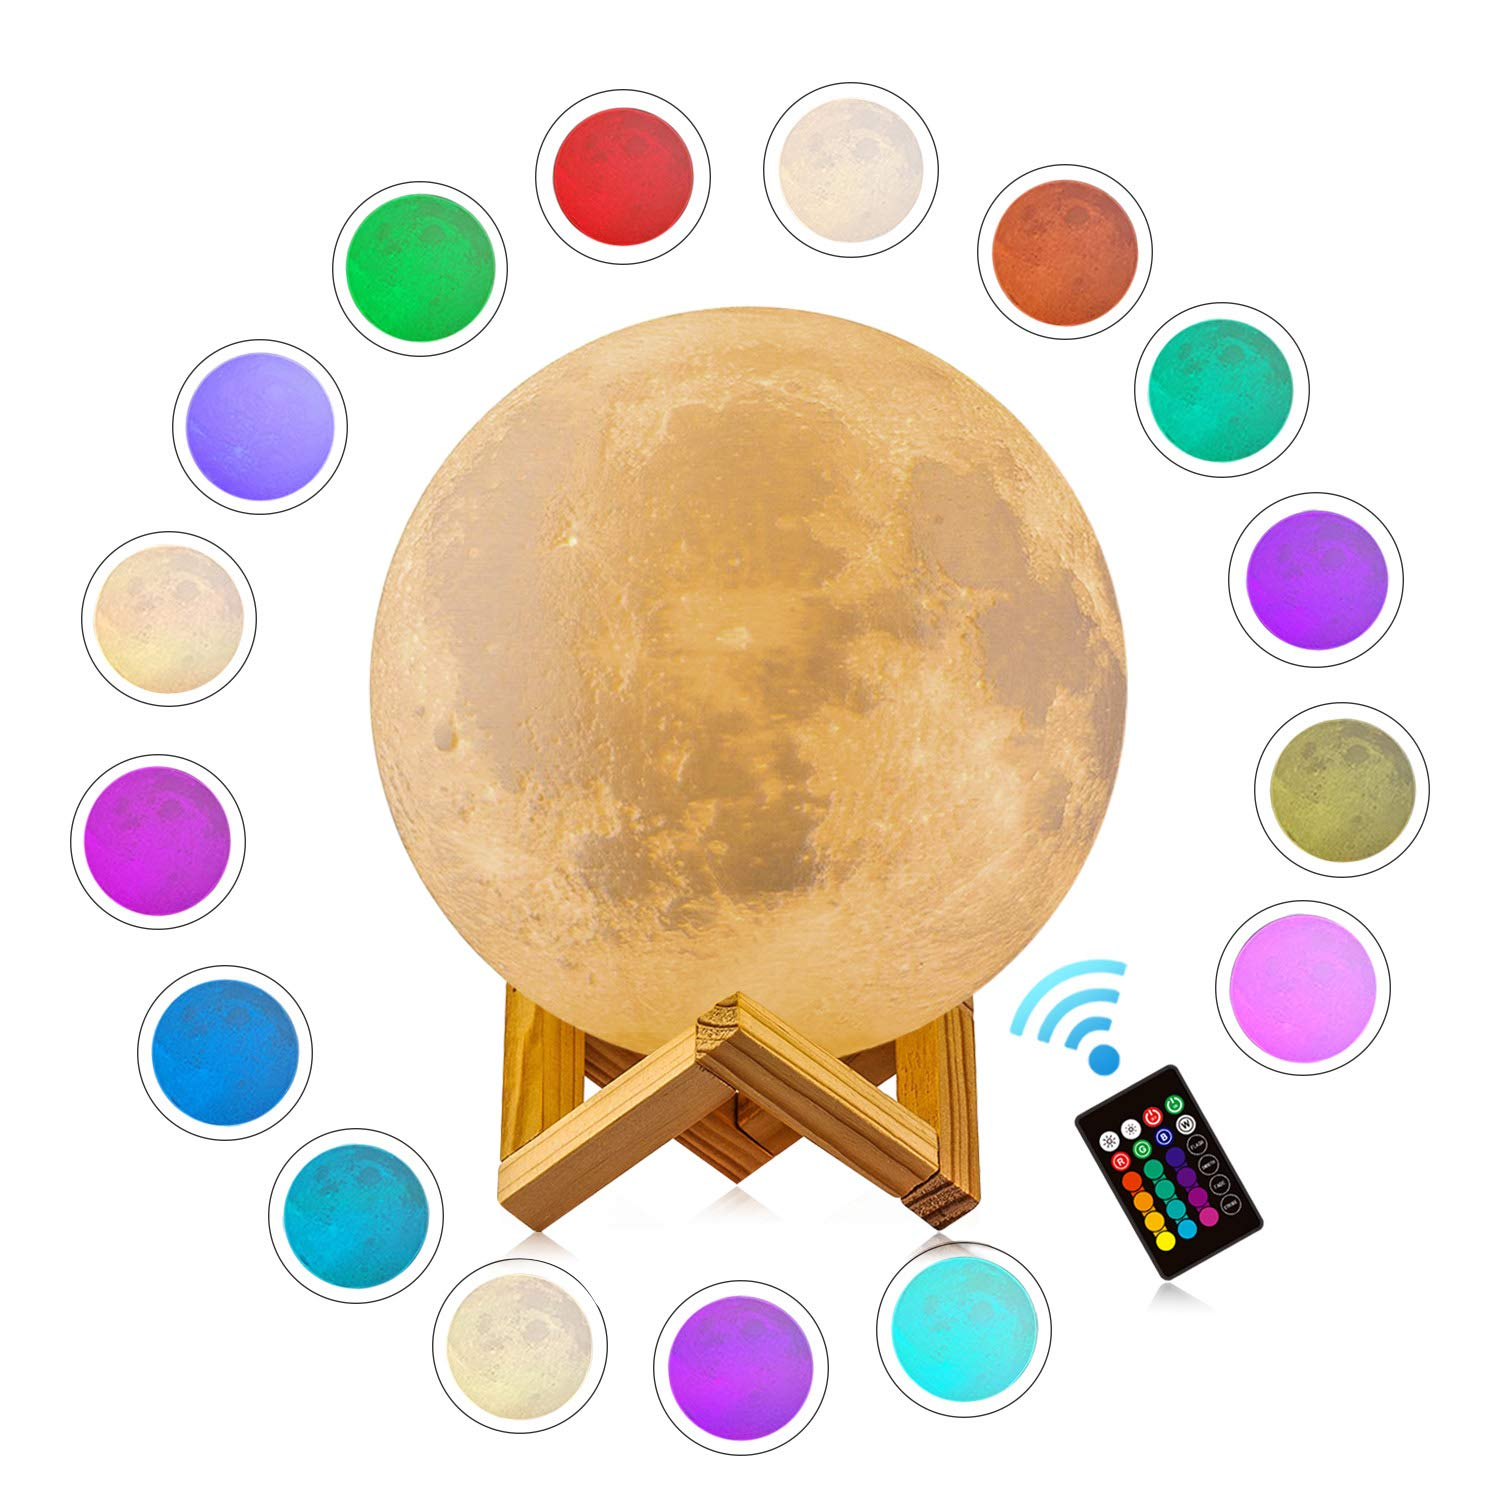 3D Moon Lamp - 16 LED Colors, Dimmable, Rechargeable Lunar Night Light (Large, 7.1 inch) Full Set with Wooden Stand, Remote/Touch Control - Magical Decor for Baby, Kids Bedroom, Fathers Day Gifts